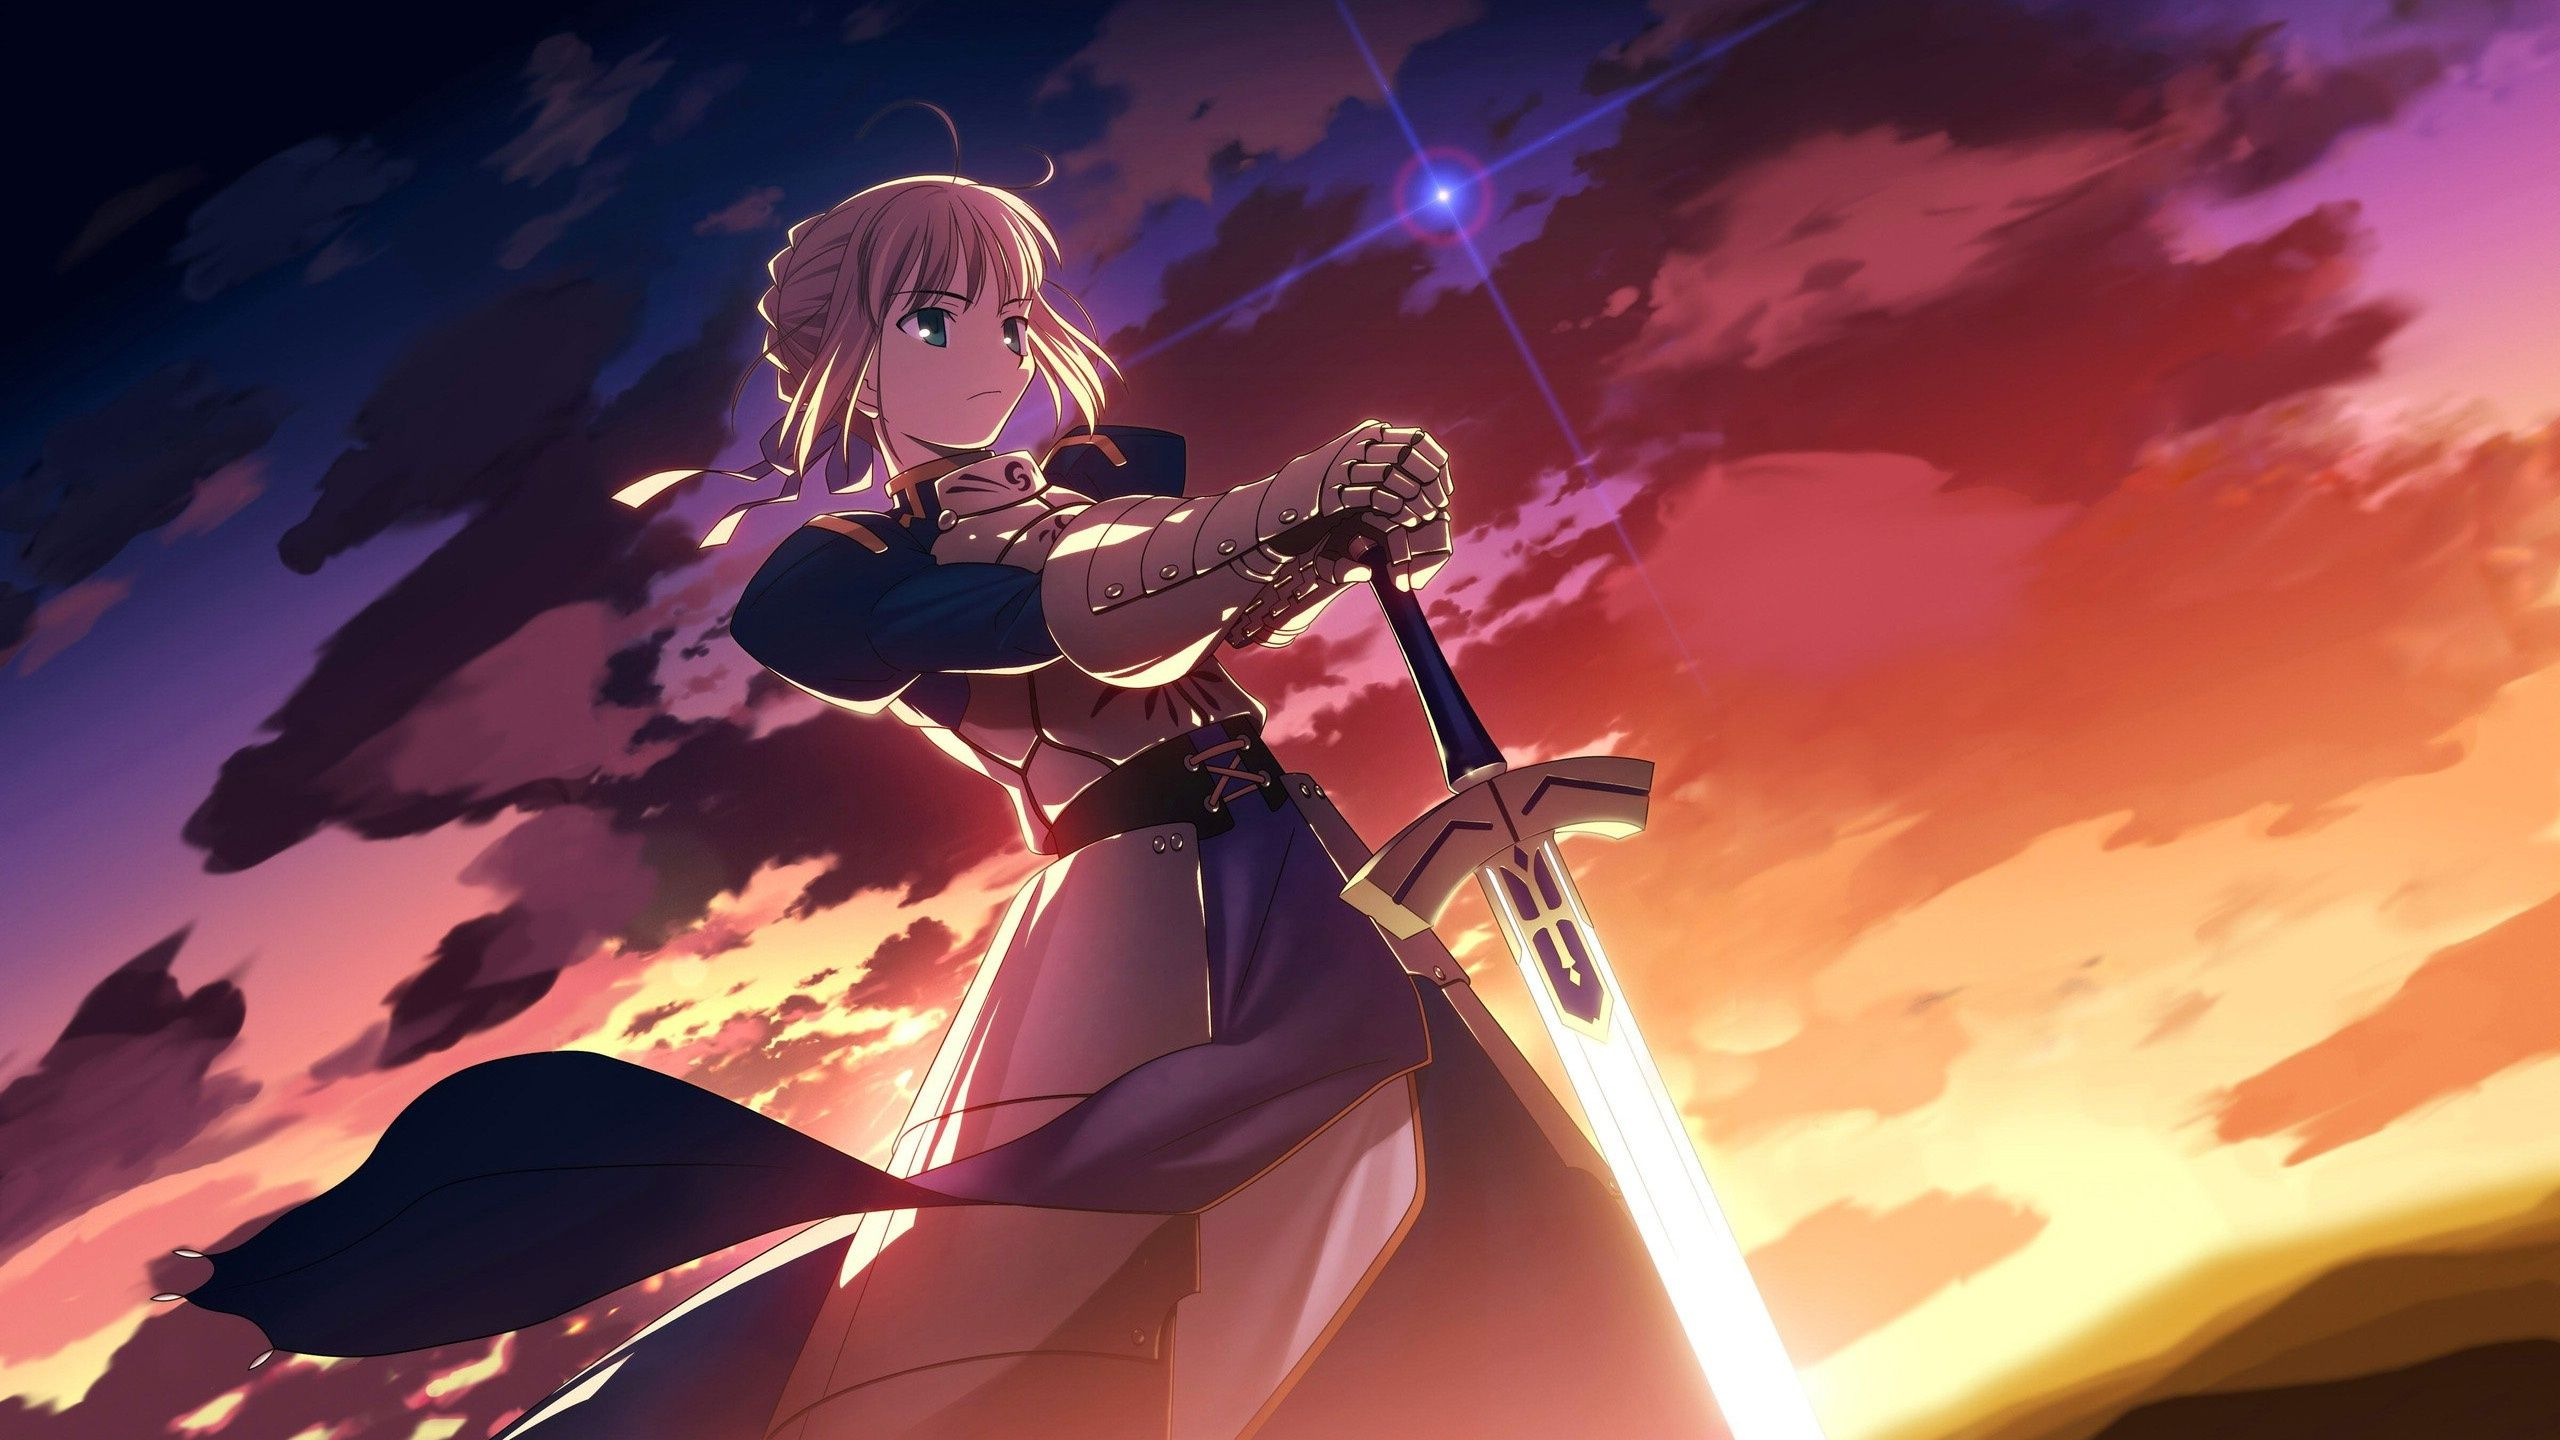 Check The Best Collection Of Epic Anime Wallpapers Hd For Desktop Laptop Tablet And Mobile Device Fate Stay Night Anime Cool Anime Wallpapers Fate Stay Night